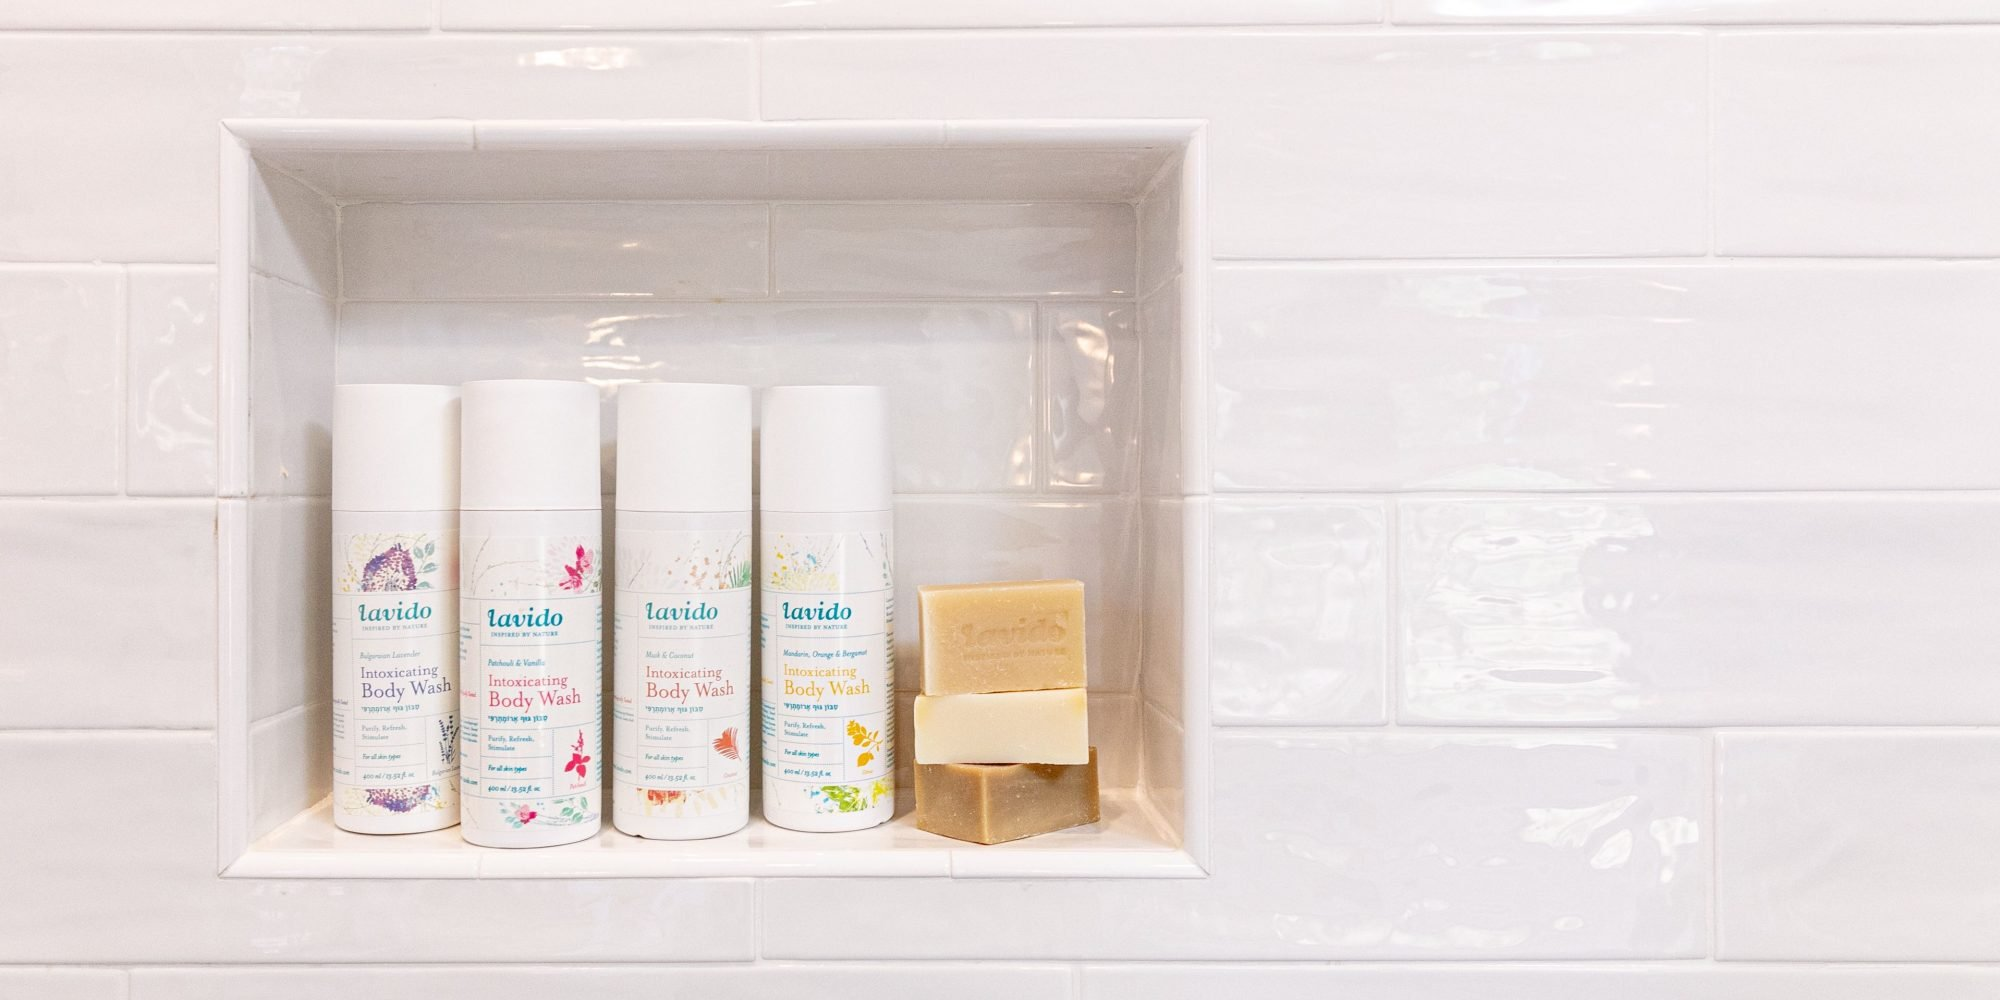 How Lavido Went From A Single Diaper Salve Made In Israel To A Global Natural Beauty Brand